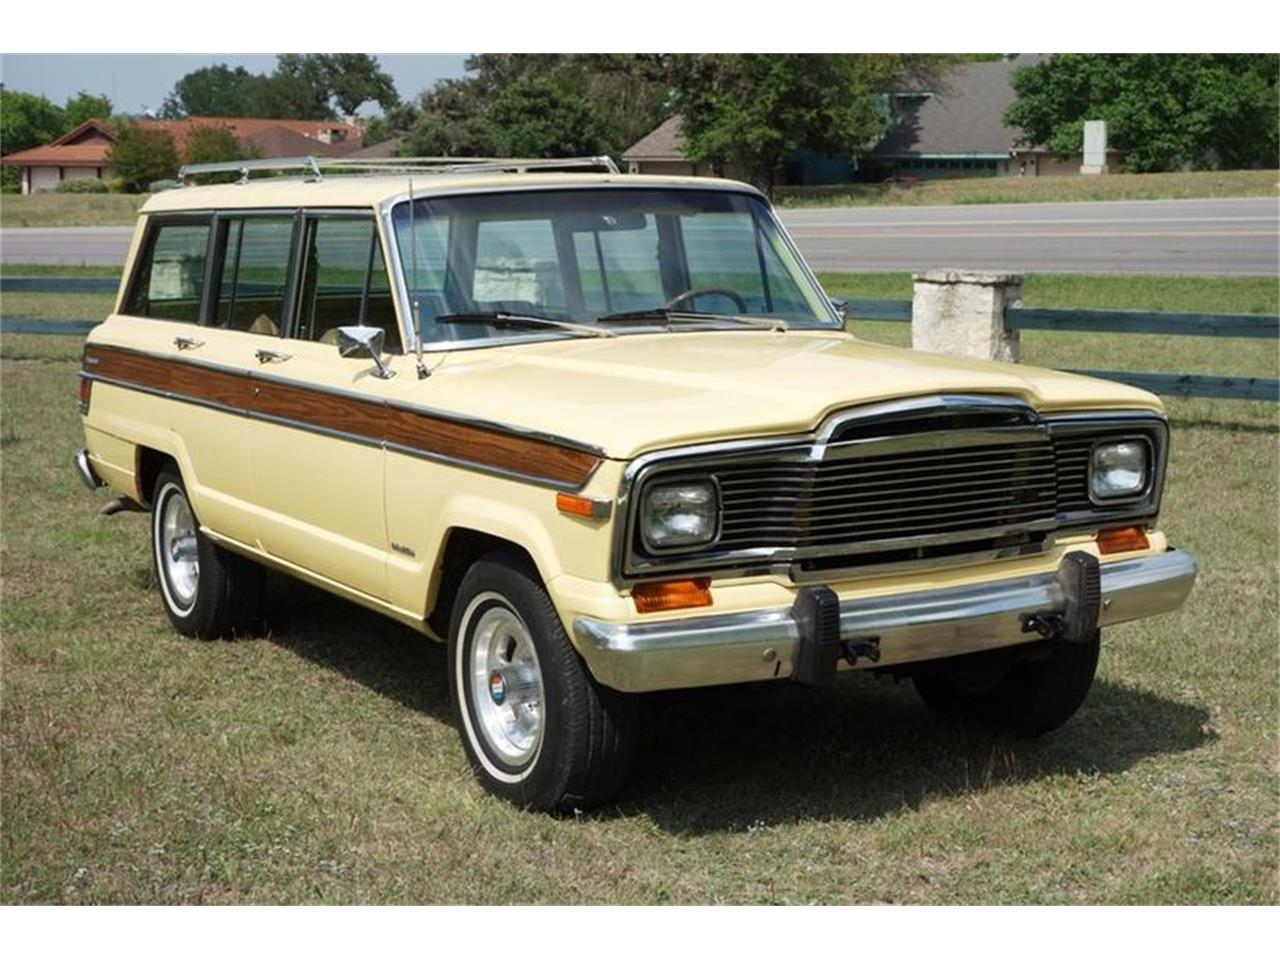 Jeep Grand Wagoneer For Sale >> 1979 Jeep Grand Wagoneer For Sale Classiccars Com Cc 1105514